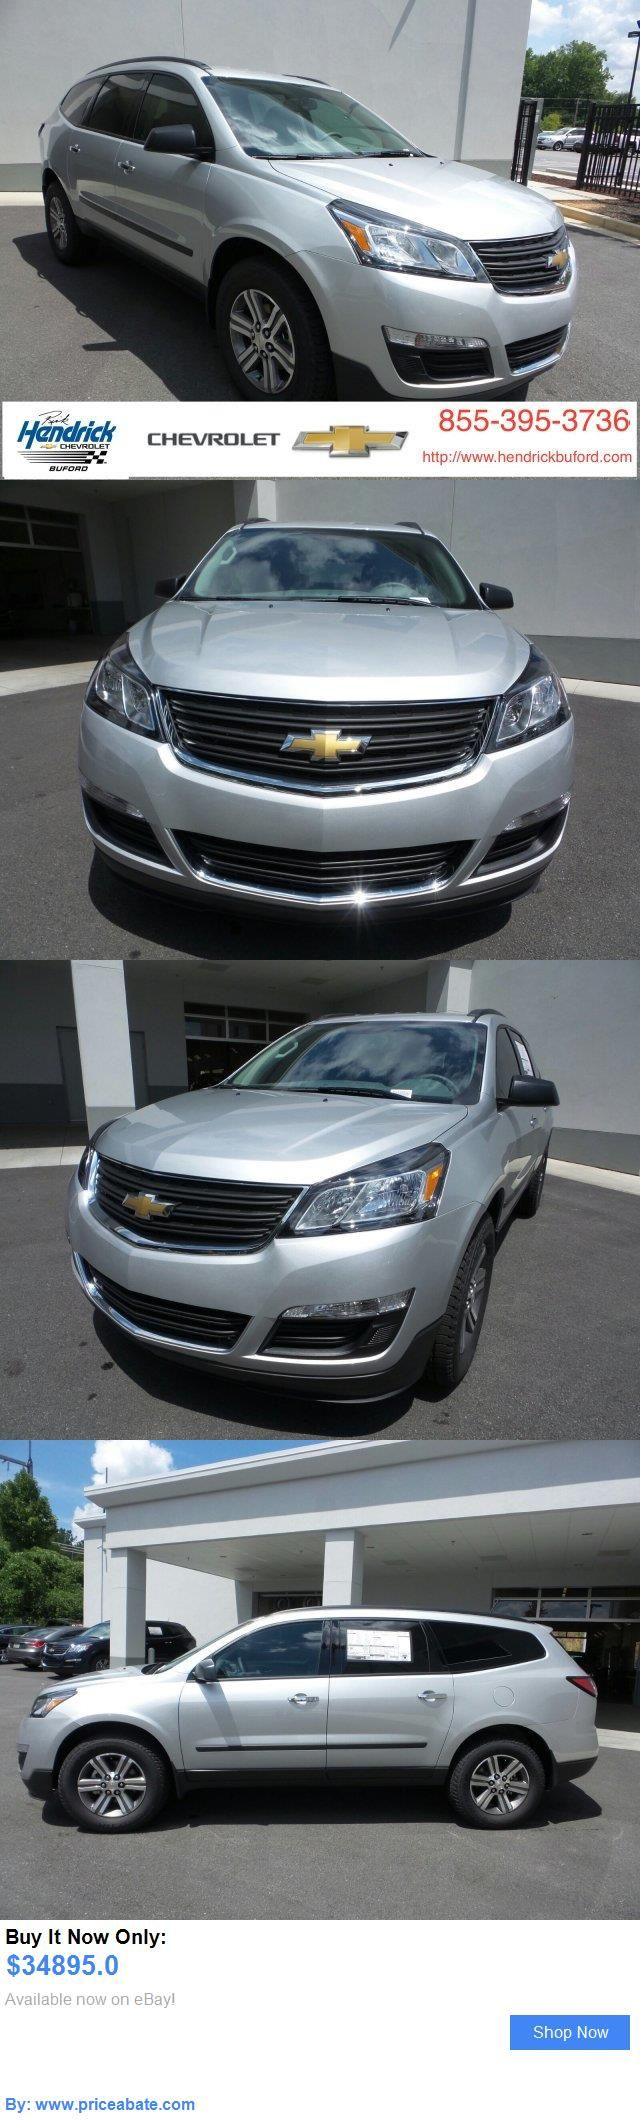 Suvs chevrolet traverse fwd 4dr ls w 1ls fwd 4dr ls w 1ls new suv automatic gasoline ice buy it now only 34895 0 priceabatesuvs or priceabate